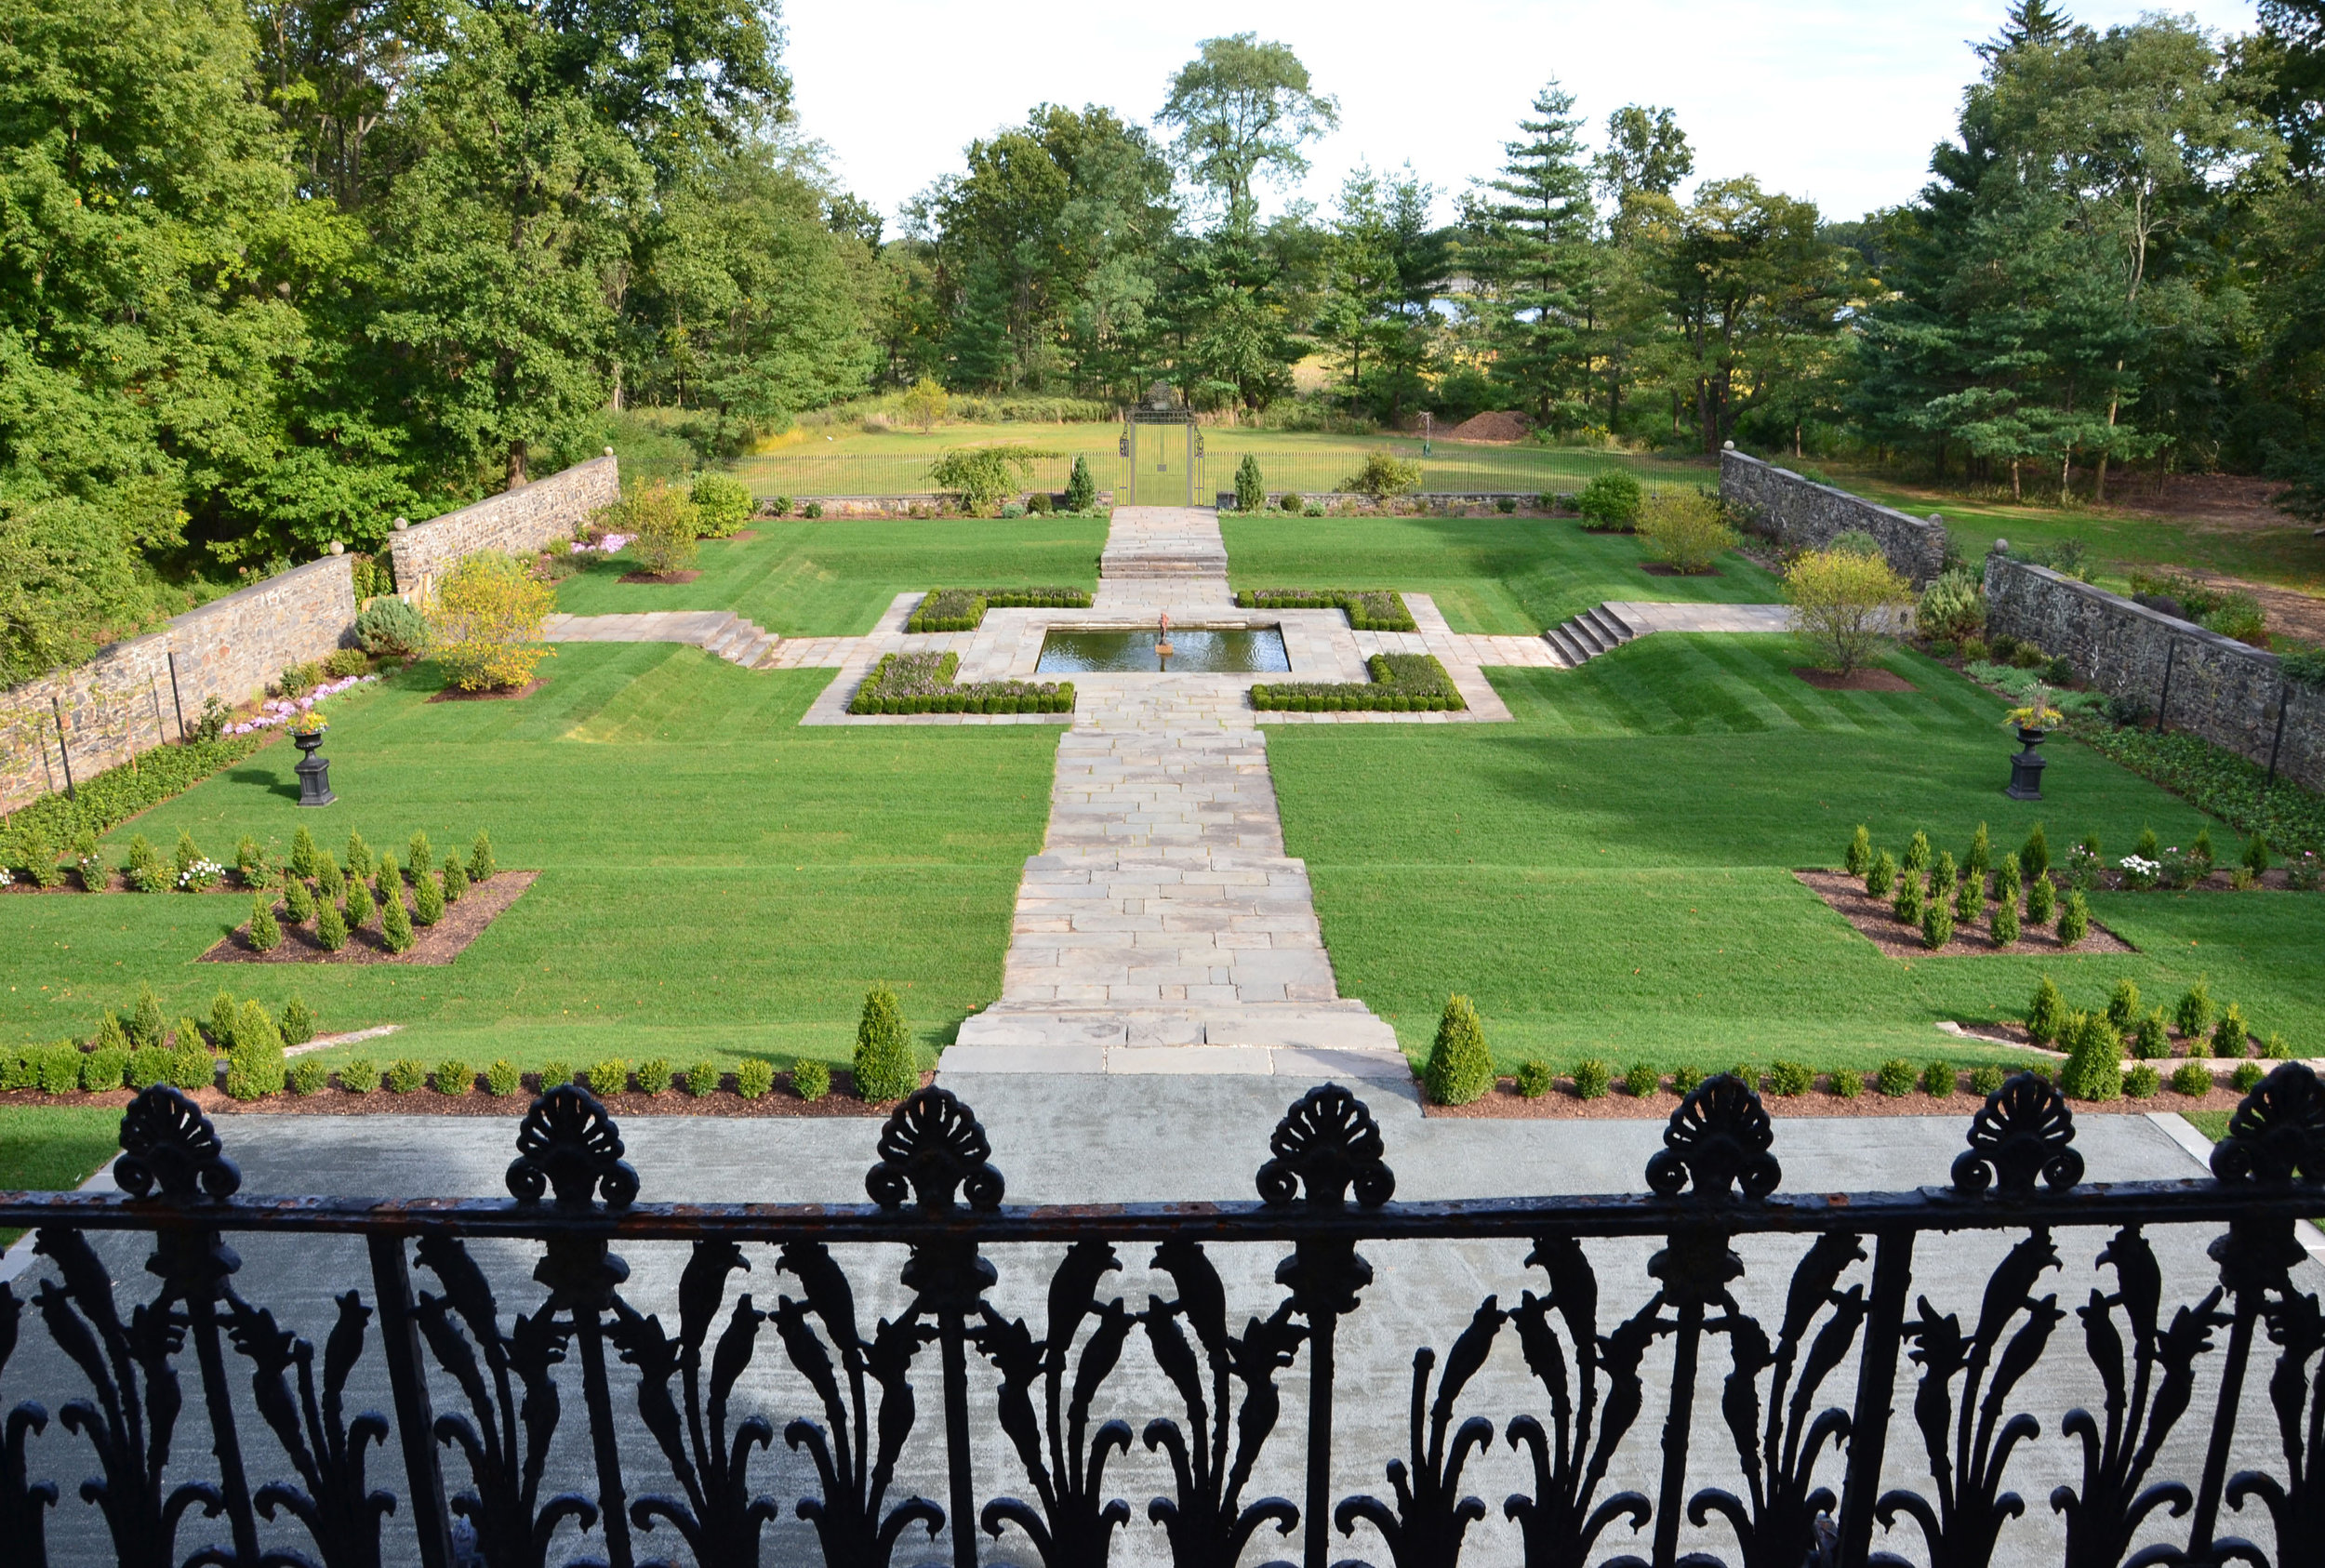 BARTOW PELL FORMAL GARDEN REHABILITATION